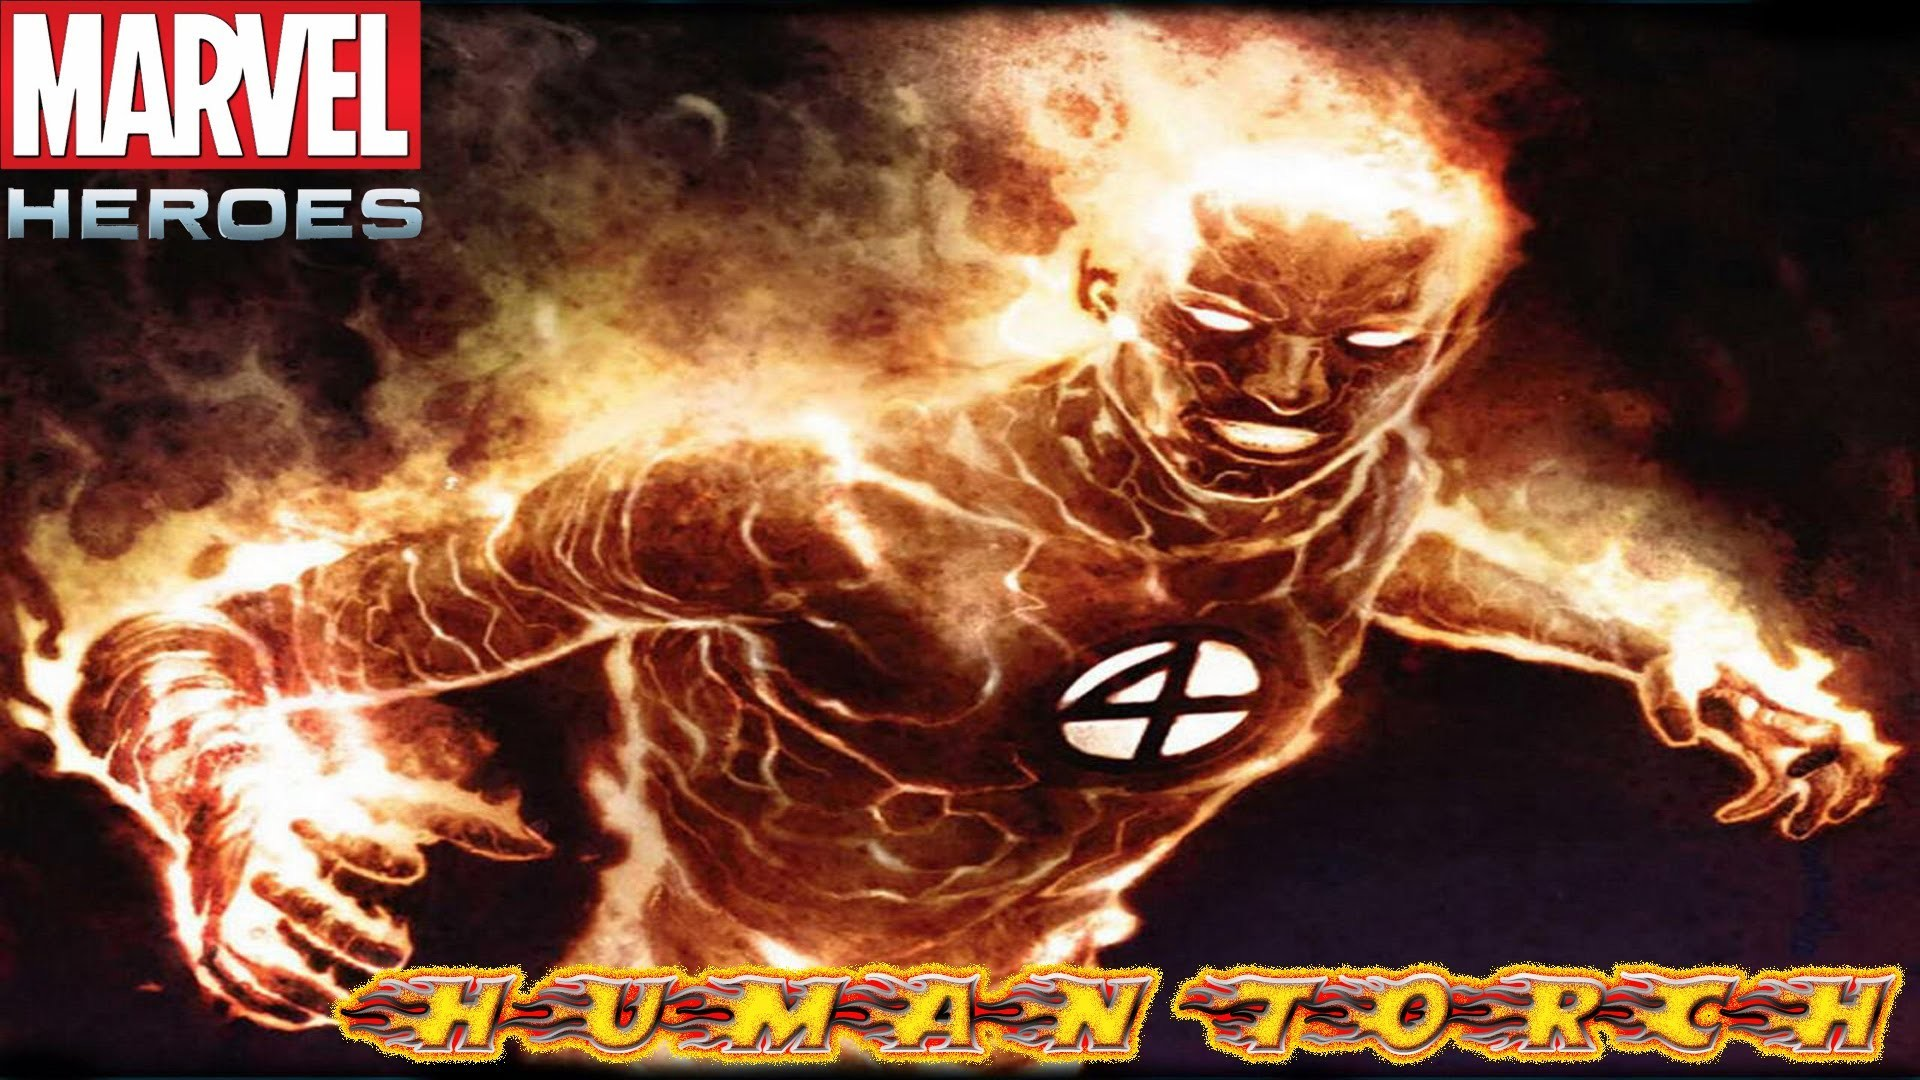 Res: 1920x1080, The Human Torch 2.11 12/24 DPS Breakdown +Unique's (Marvel Heroes #27)